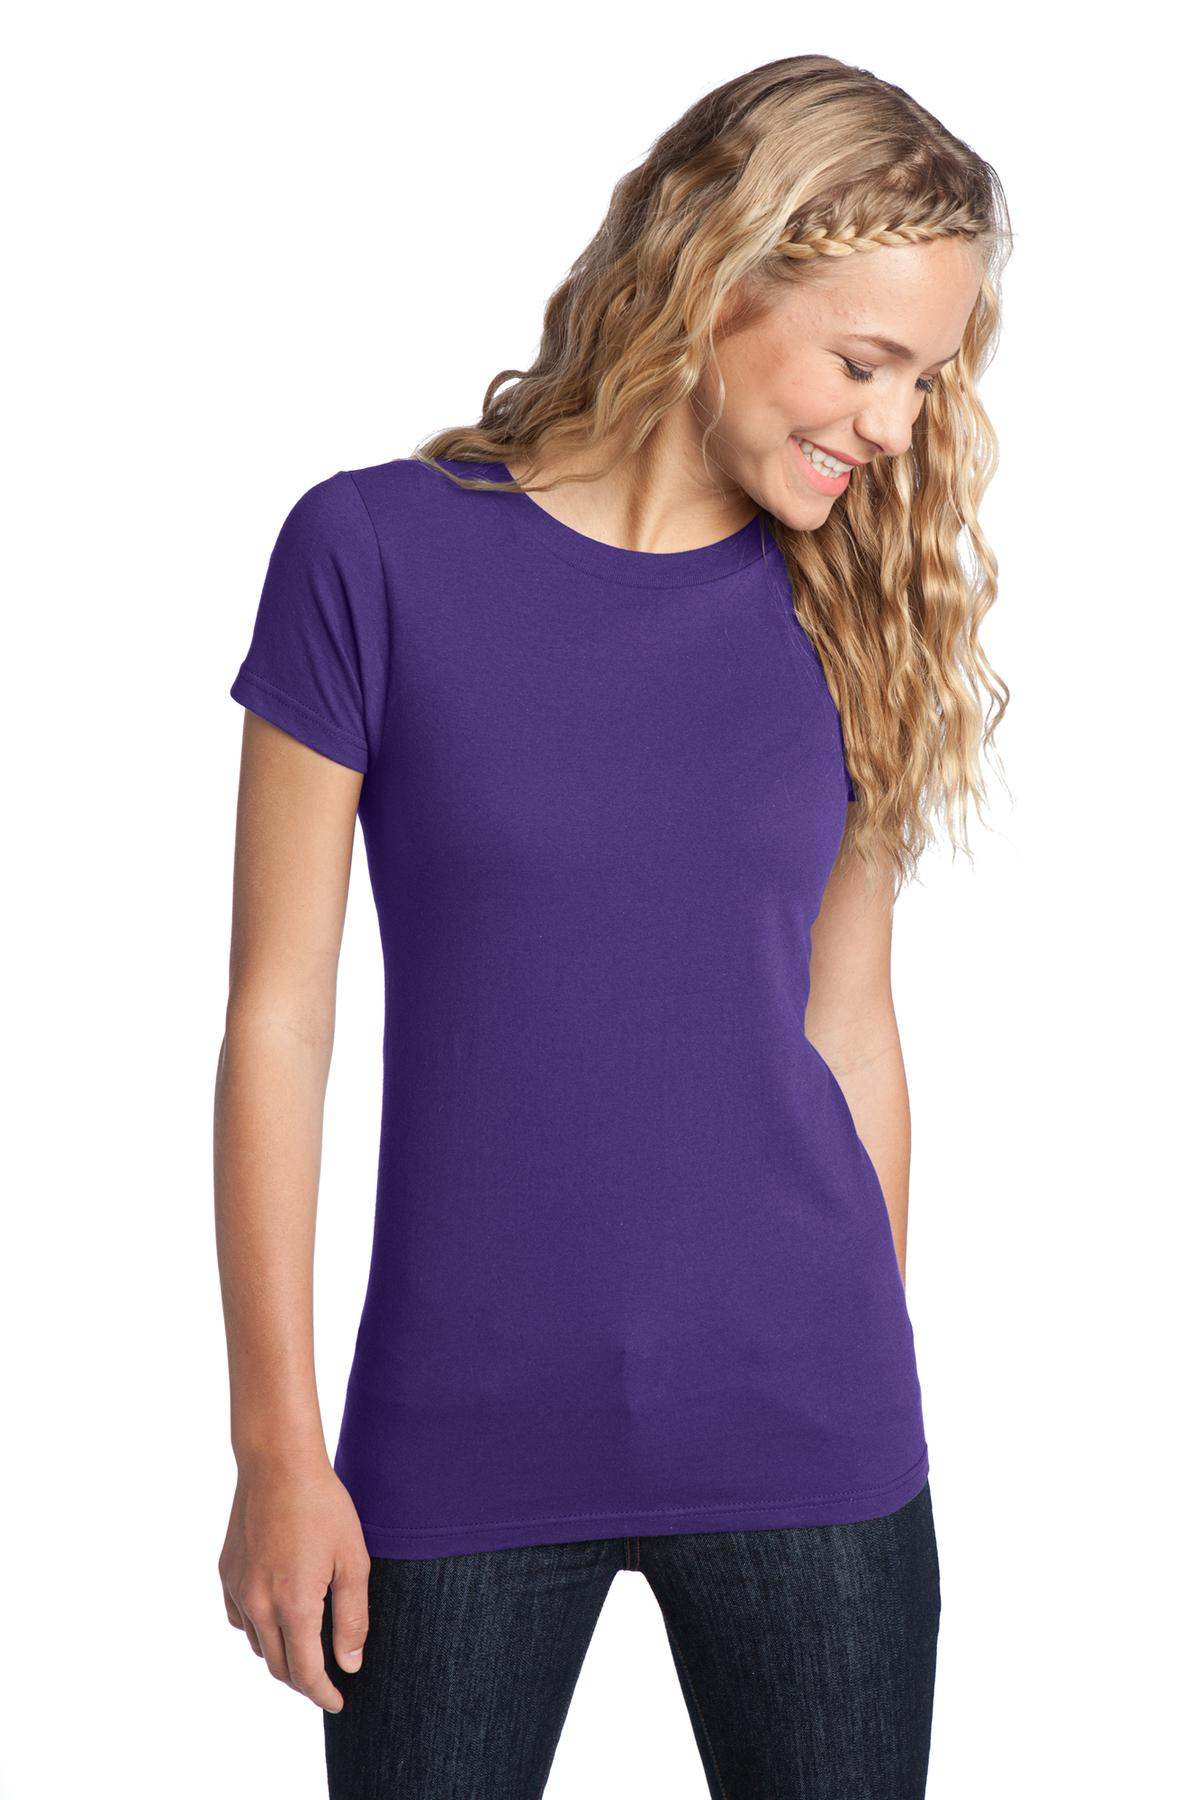 District ®  Women's Fitted The Concert Tee ®  DT5001 - Purple